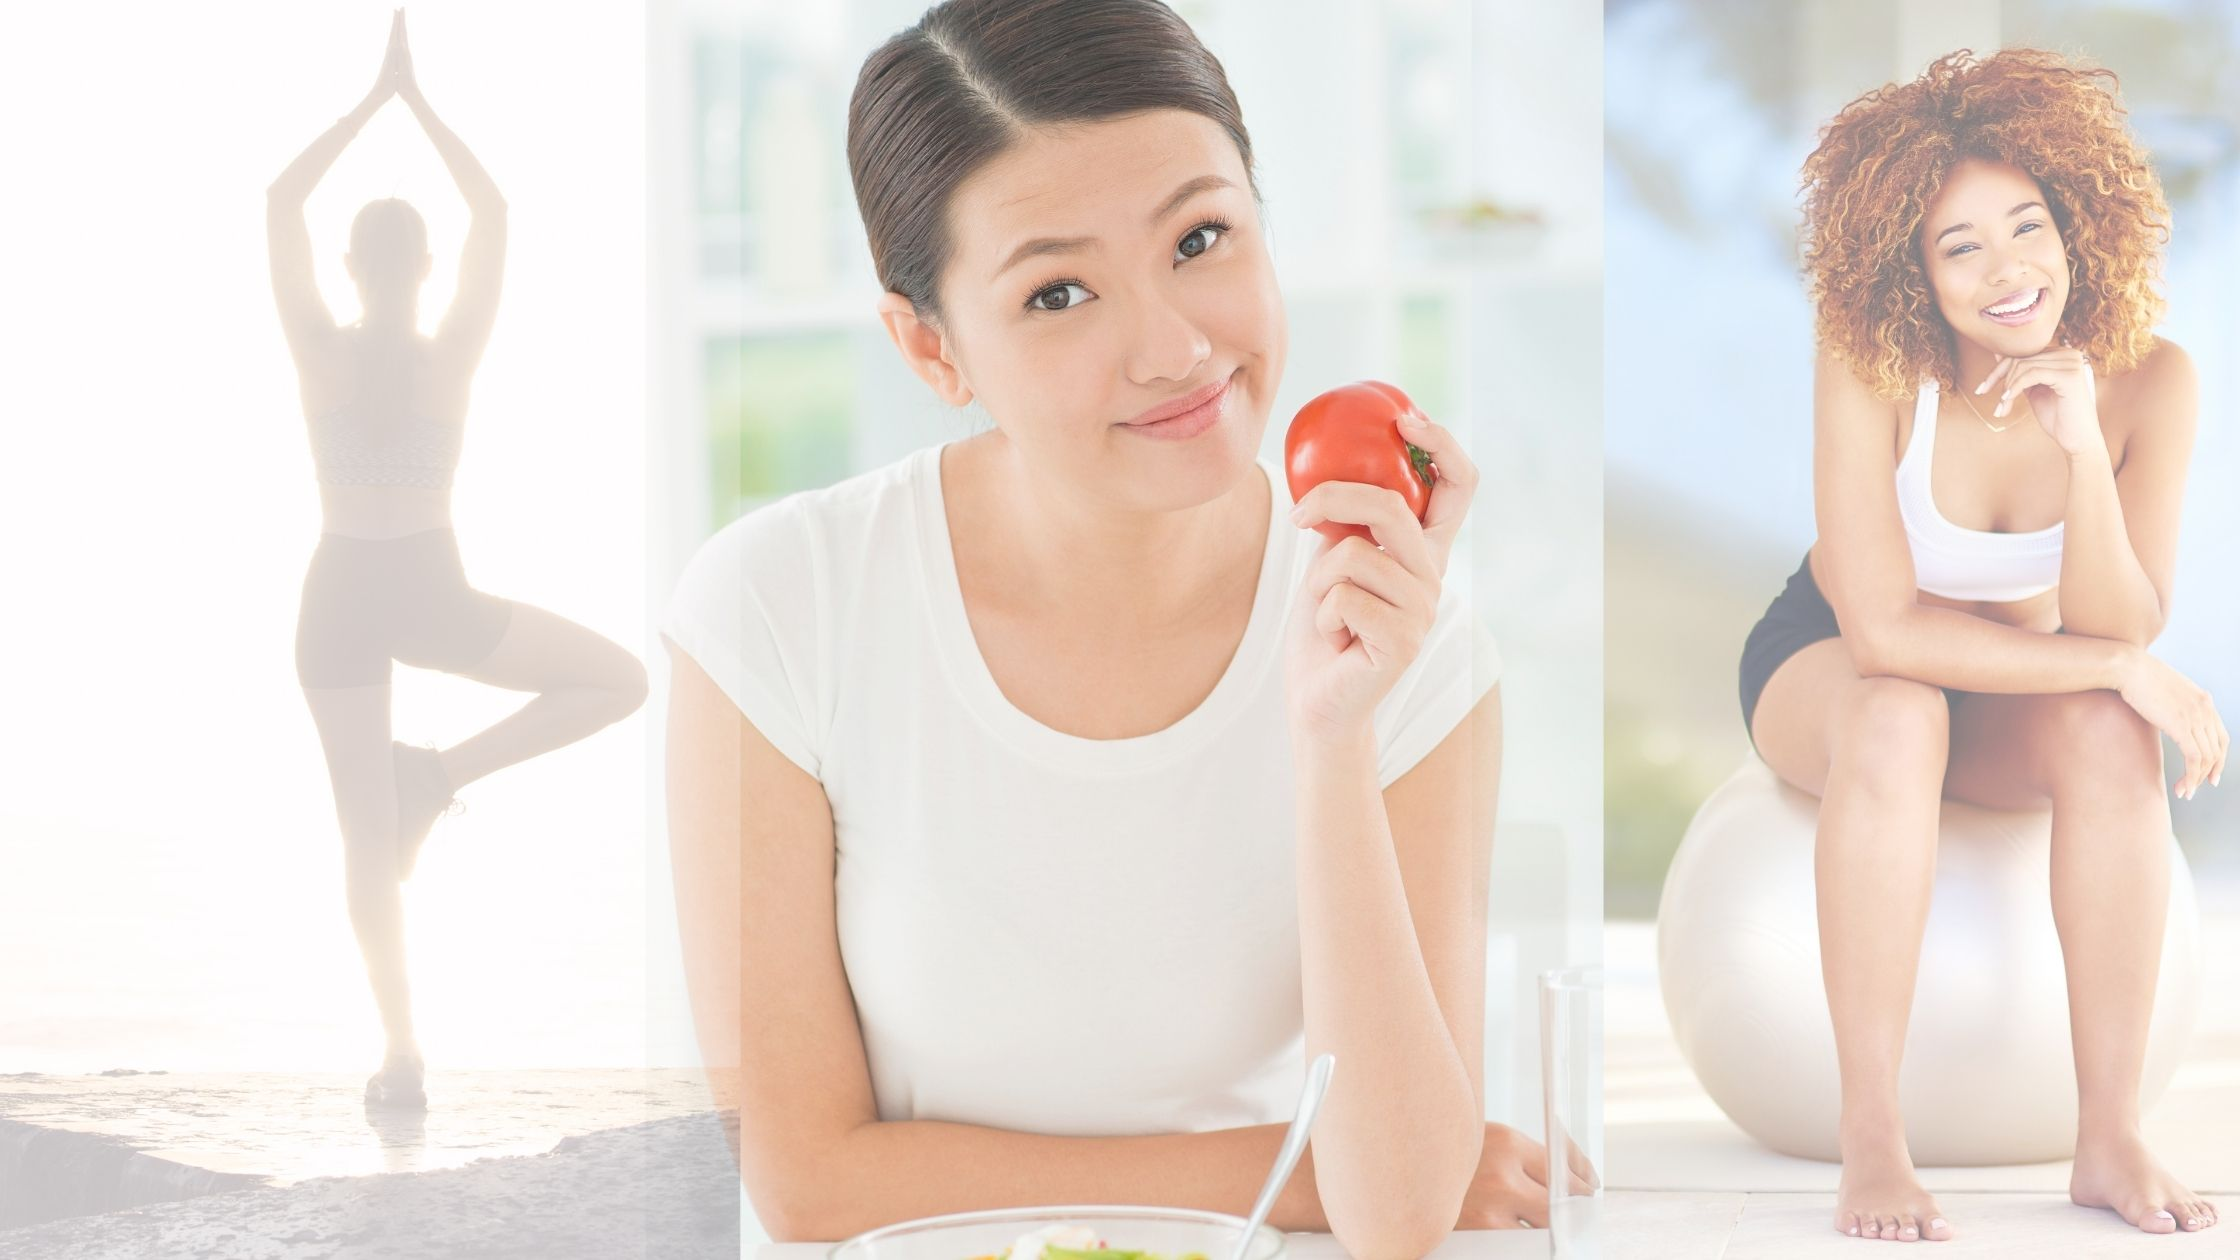 Healthy Habits Image - Image of 3 different women practicing healthy habits through meditation, eating, exercising and the like. First woman from the left wearing tight sleeveless sports clothes and shorts on her yoga pose near the sea shore. The woman at the middle is wearing white with eyes opened and smilie while holding a red tomato and eating salad. The third woman on the right wearing white top and black shorts sitting on an exercise ball looks very happy with face smiling and beautifully curly hair.